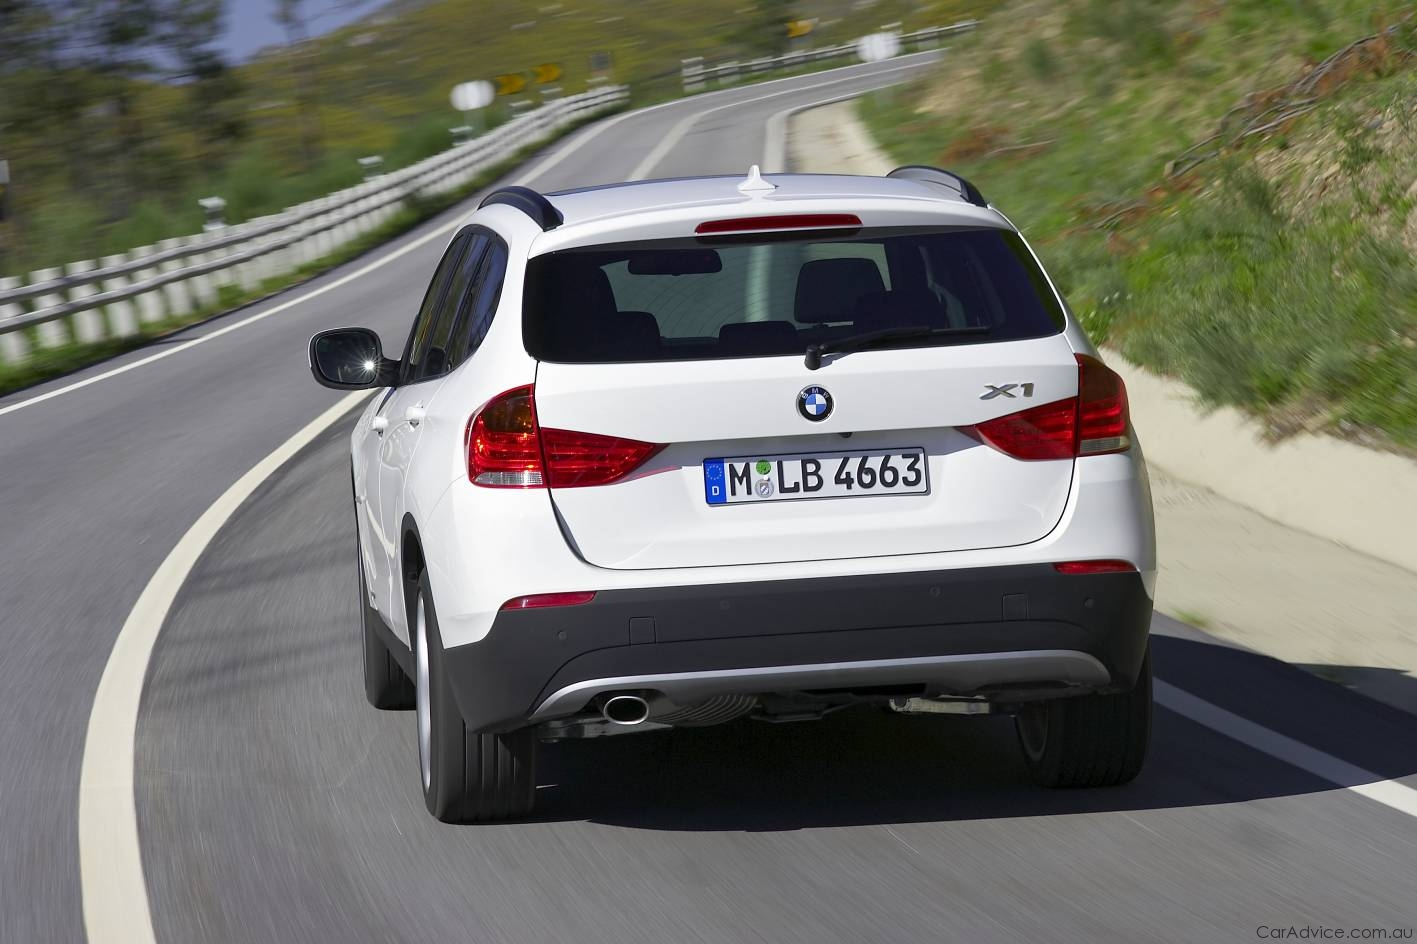 BMW X1 Launched  BMWs entry SUV X1  Photos 1 of 31